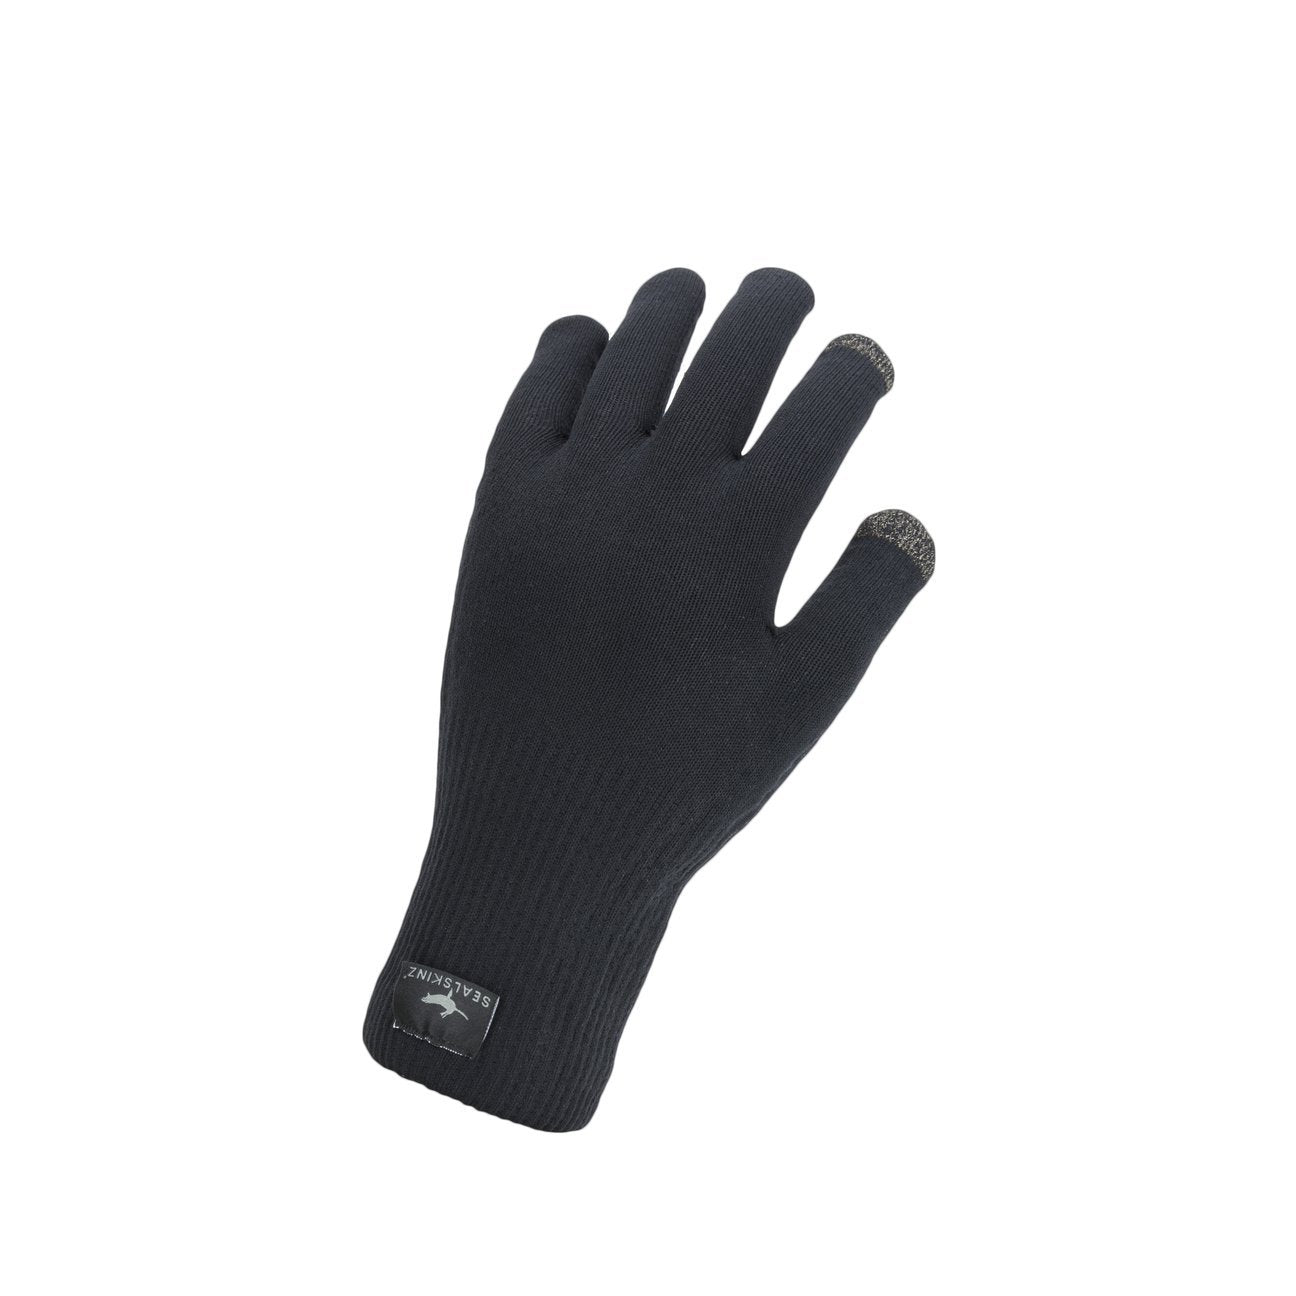 waterproof-all-weather-ultra-grip-knitted-glove